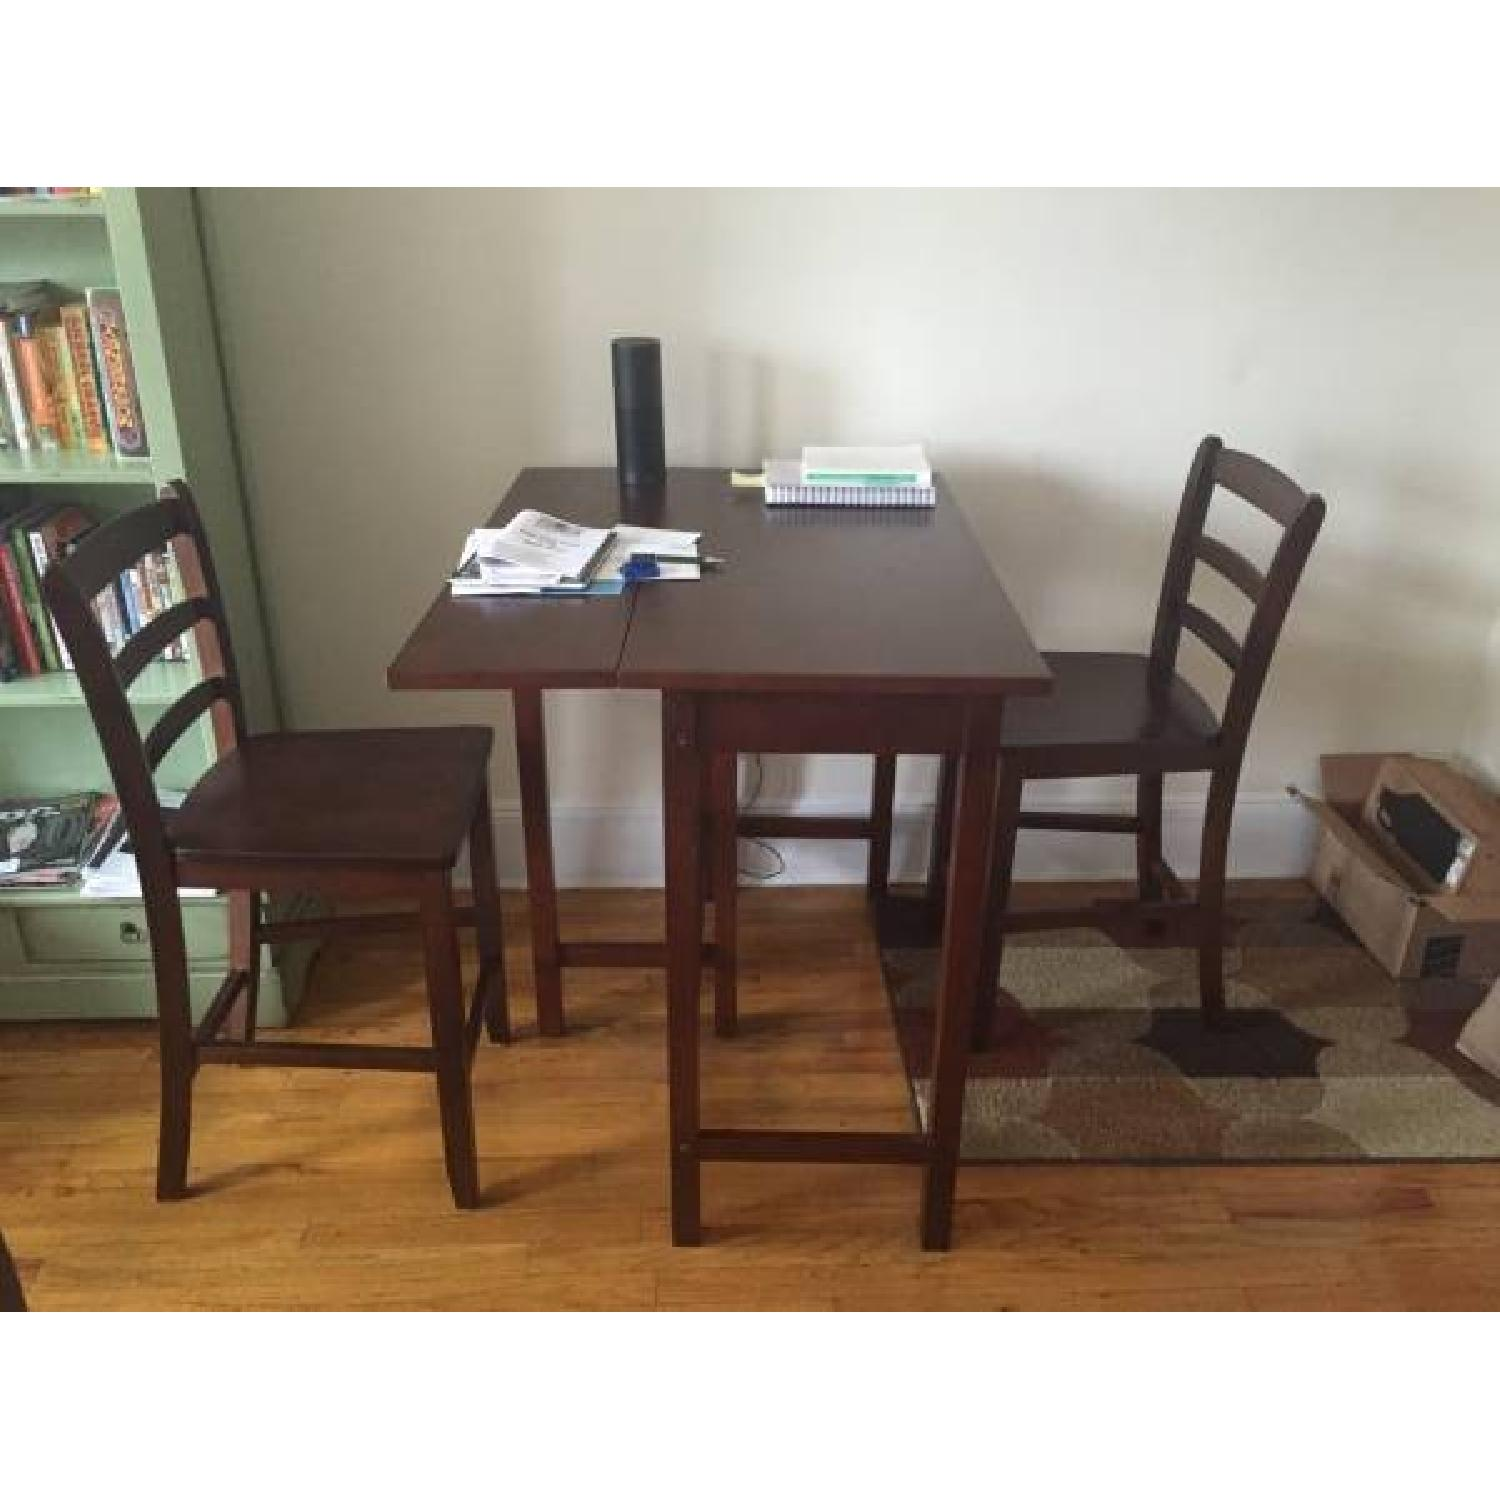 Dark Wood Extendable Table w/ 2 Chairs - image-1